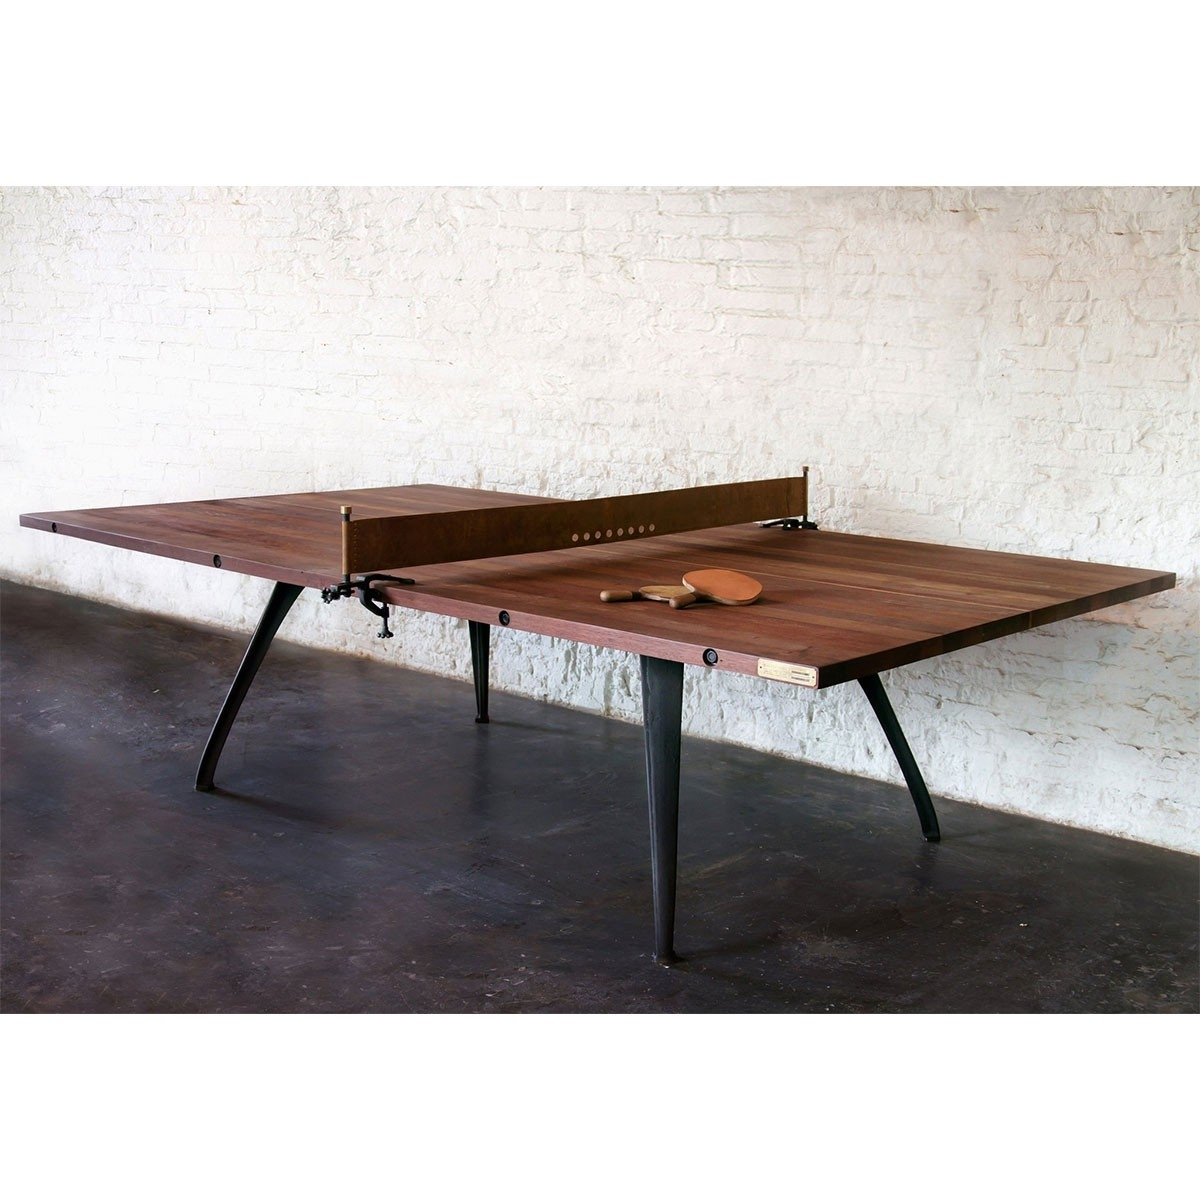 Ping Pong Table - Burnt Umber - Iron | Nuevo District 8 Hgda494 regarding Metal Framed Reclaimed Wood Sideboards (Image 17 of 30)